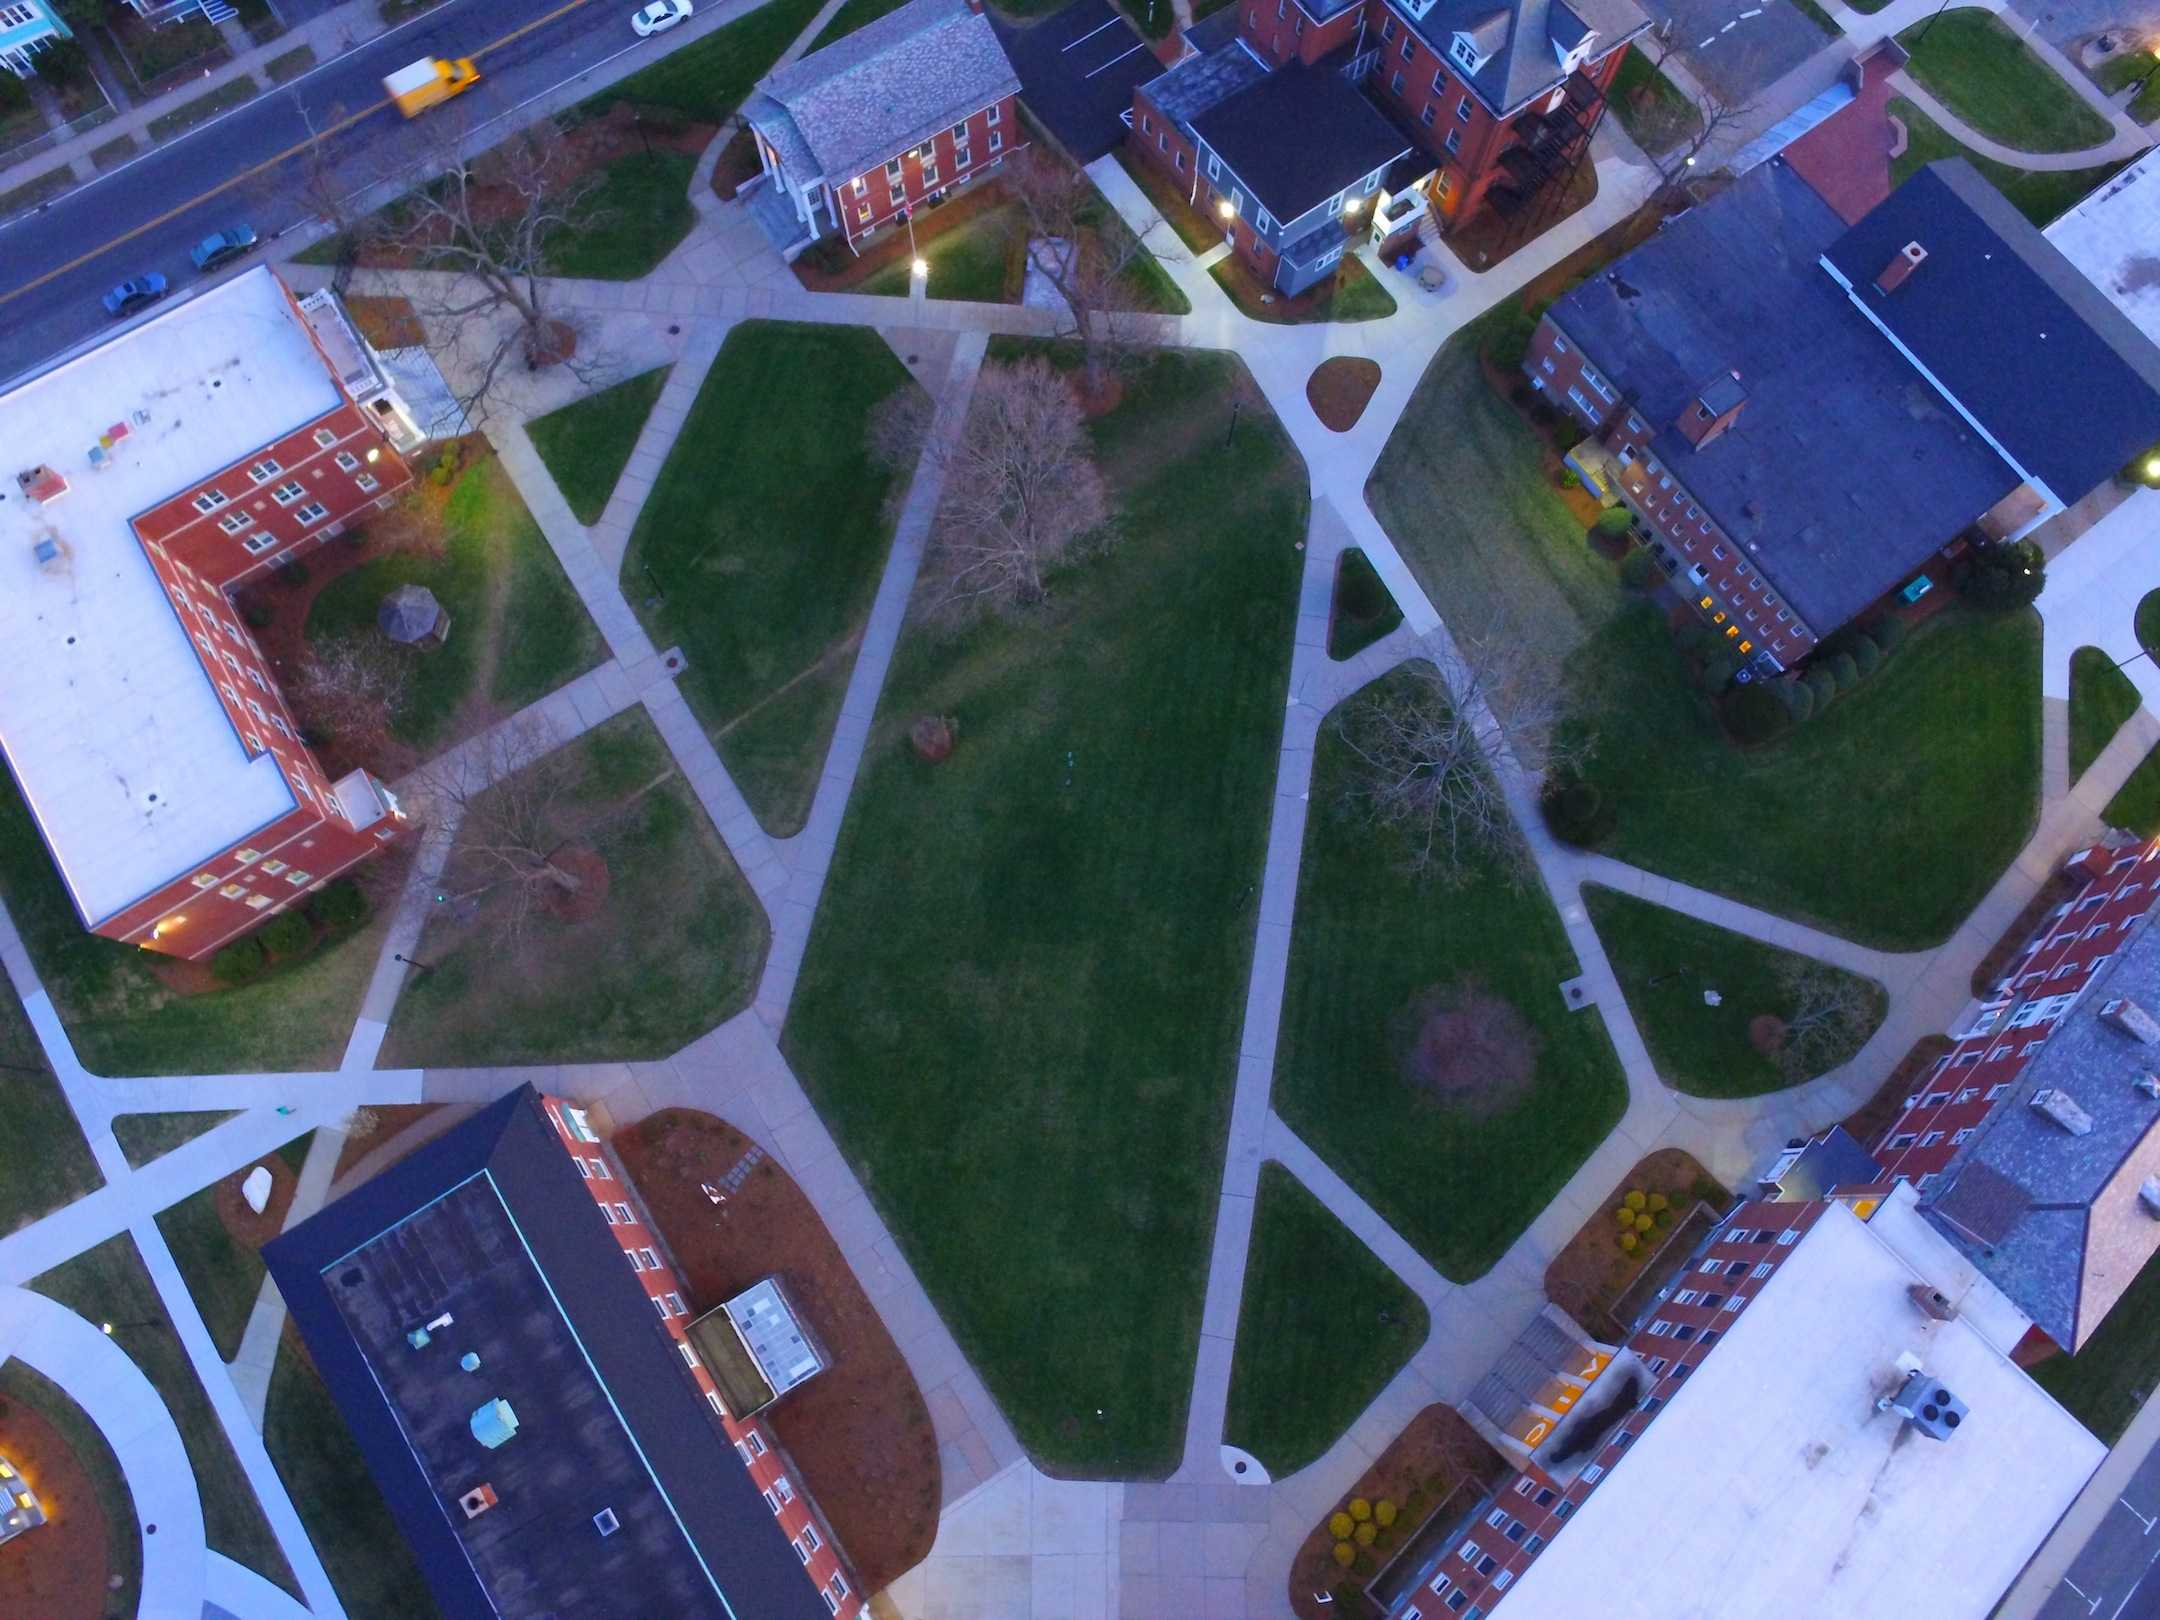 An aerial view of AIC, courtesy of Zach Bednarczyk's drone.